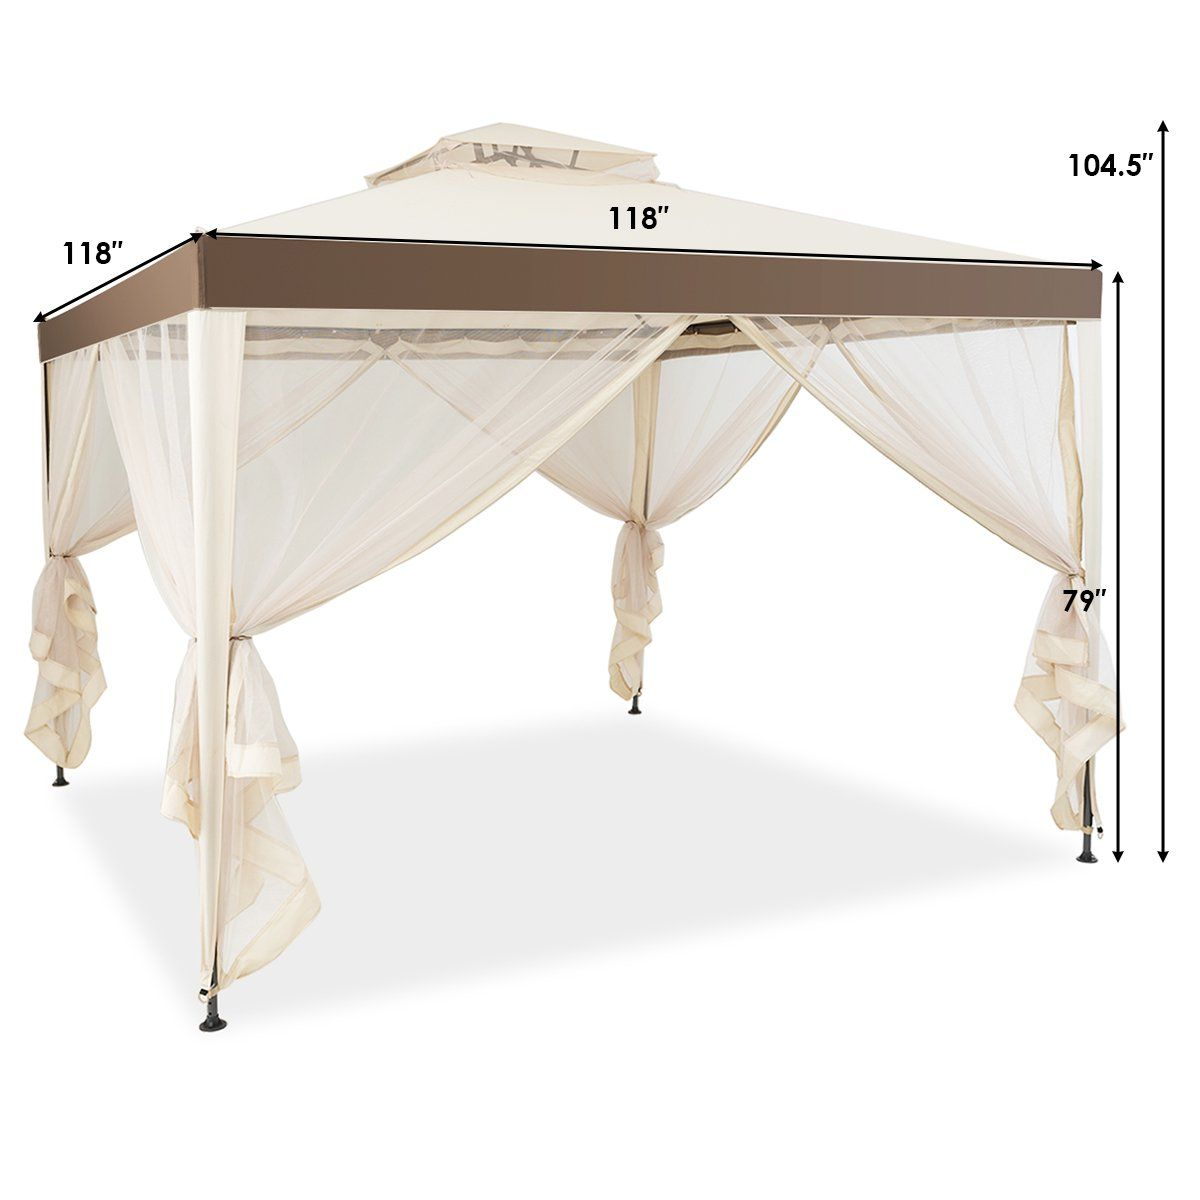 10 X 10 2 Tier Canopy Gazebo Tent Outdoor Netting Picnic Party Sun Shade Walmart Com In 2020 Gazebo Tent Gazebo Canopy